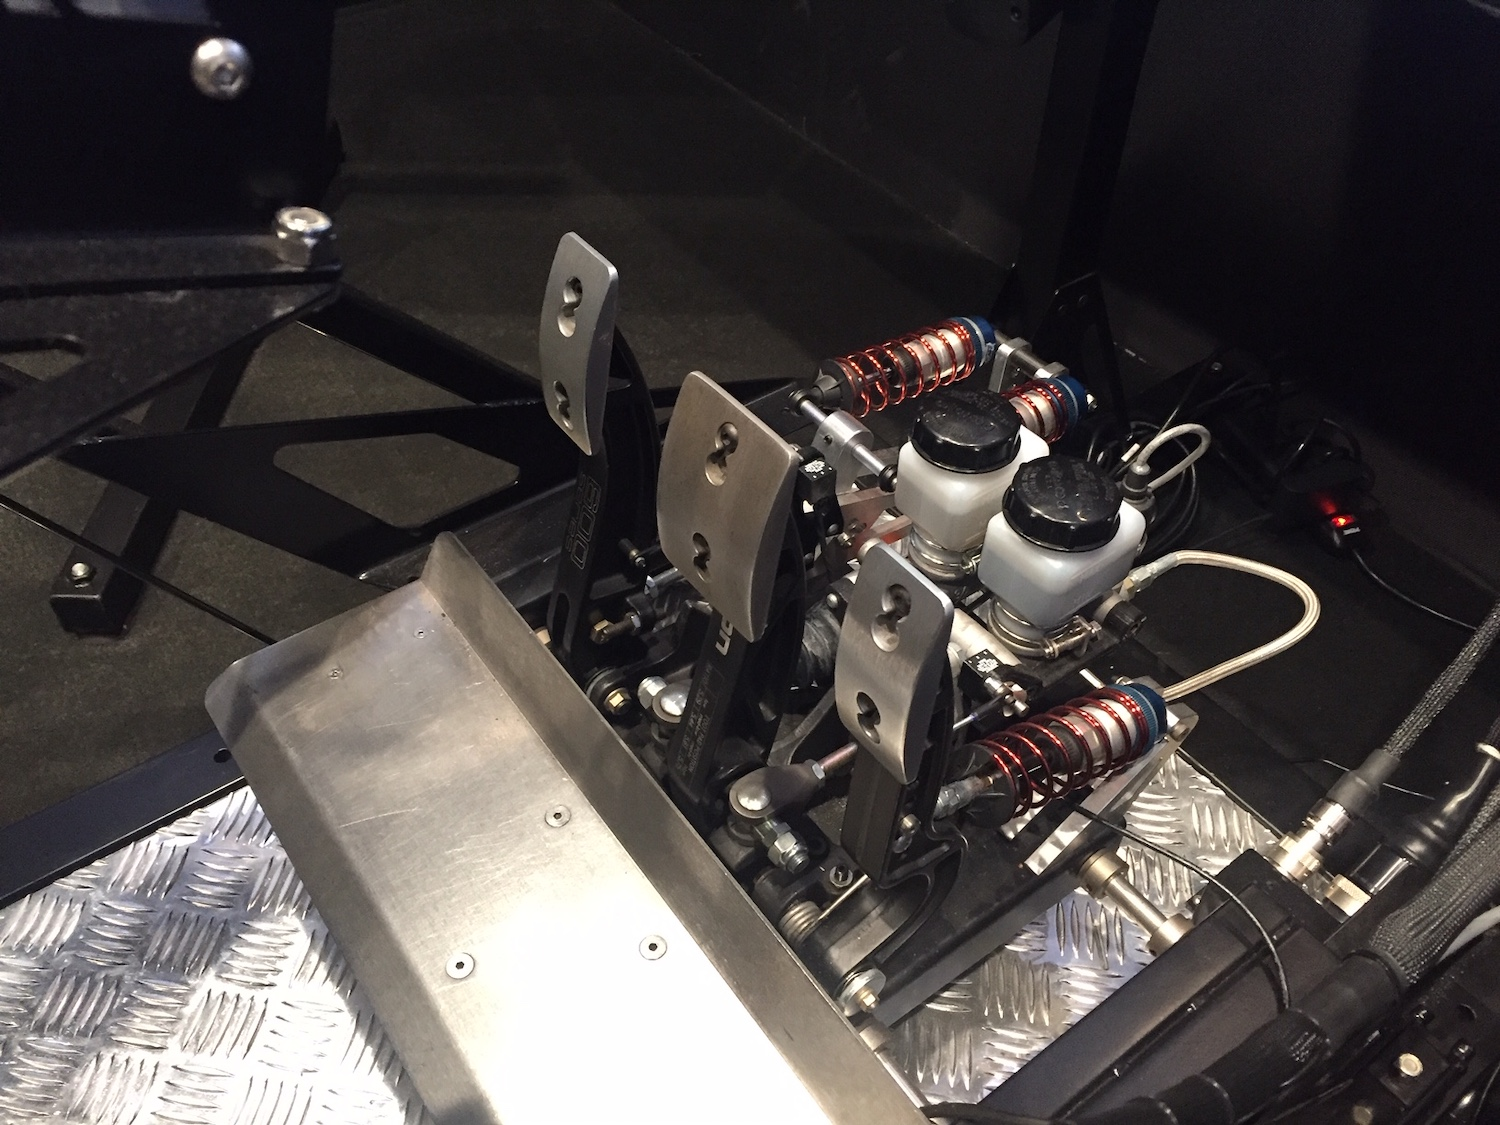 professional racing simulator pedals